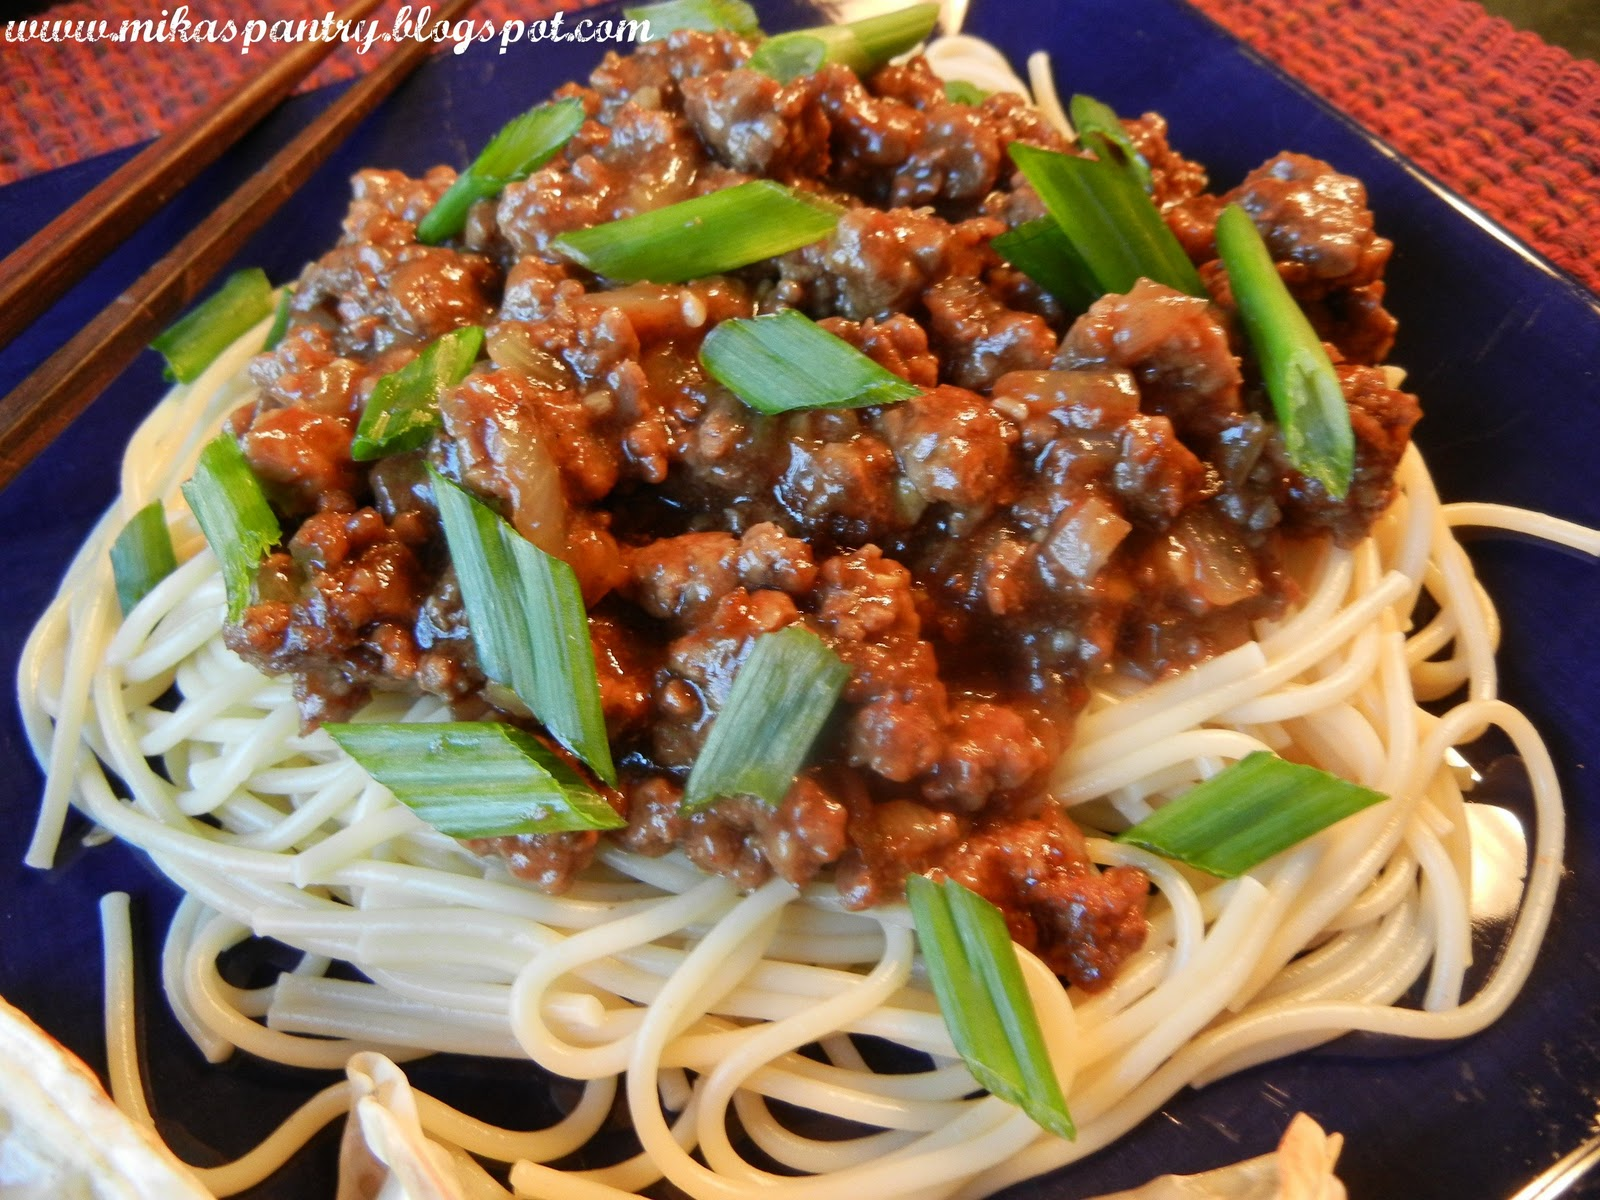 Mika's Pantry: Chinese Spaghetti with Spicy Meat Sauce